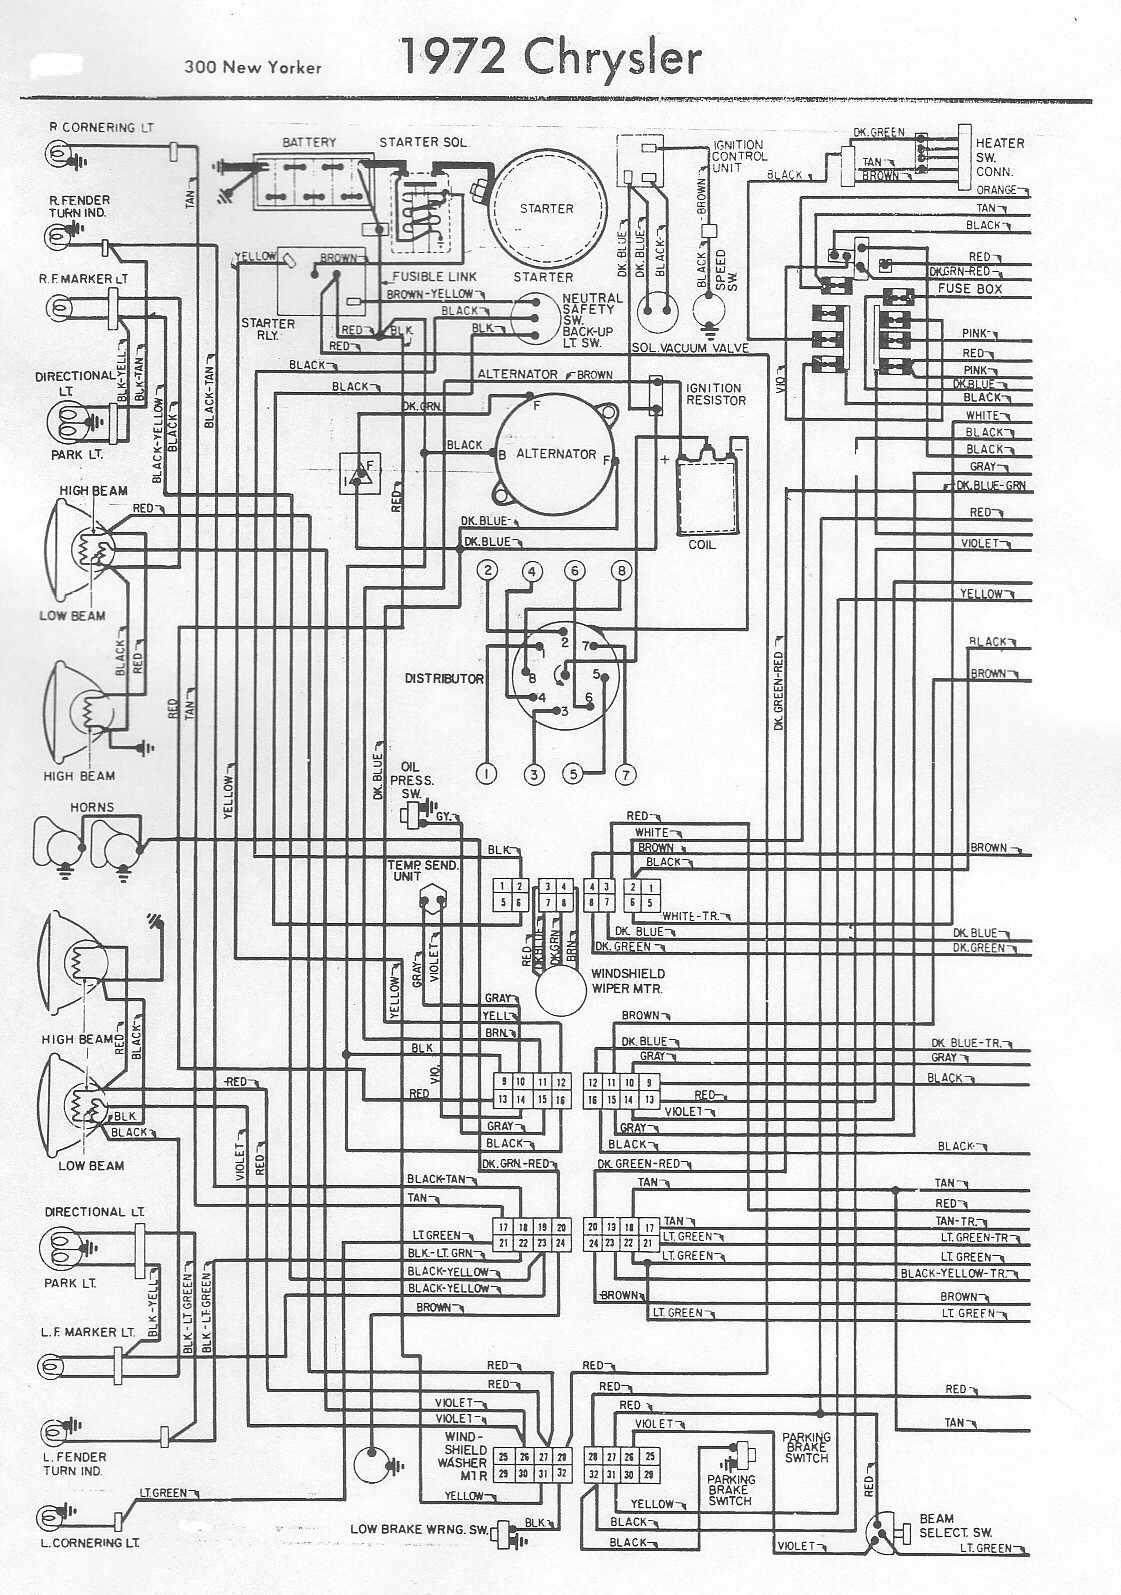 [SCHEMATICS_4CA]  Wiring Diagram For A Car Free Download | Wiring Diagram | Black Free Download Wiring Diagrams |  | Wiring Diagram - Autoscout24